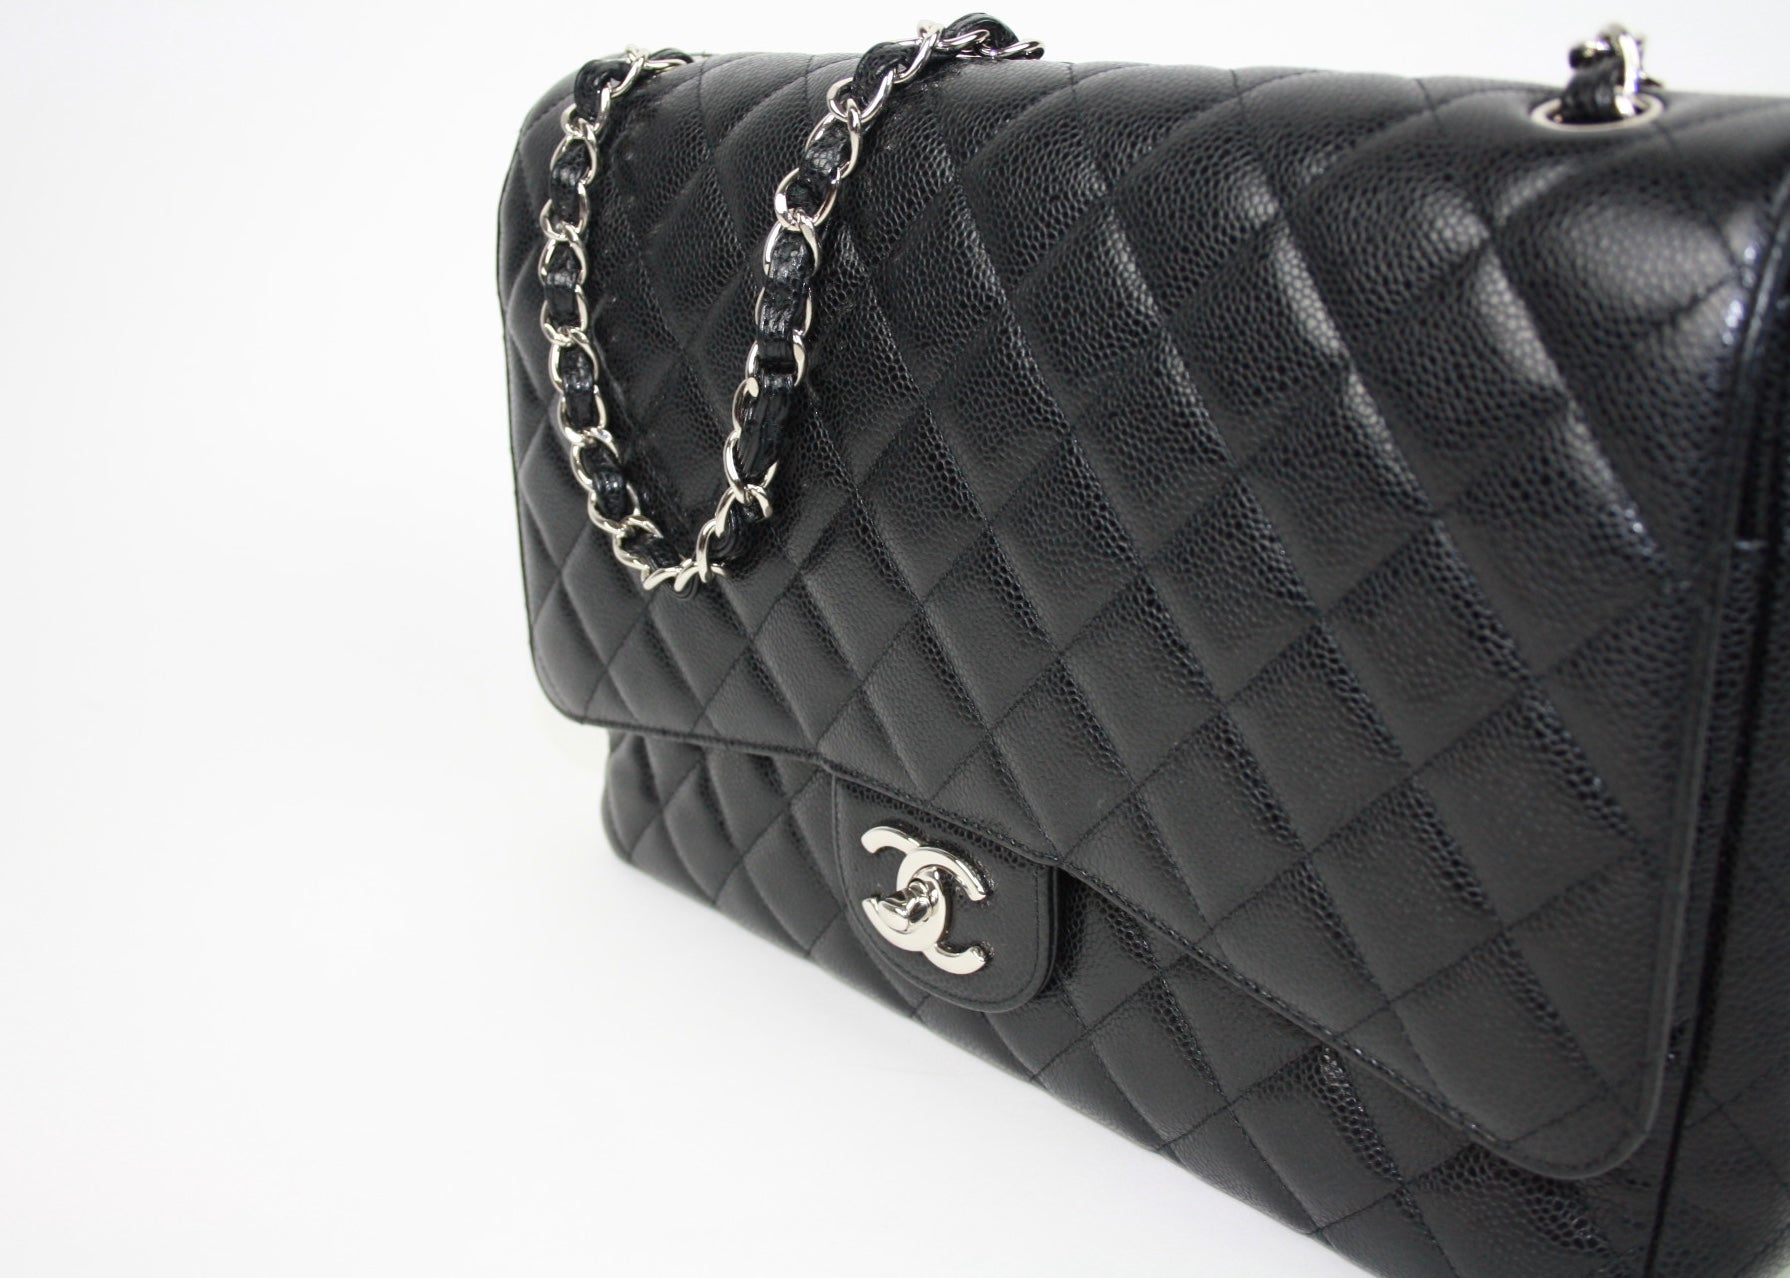 CHANEL Maxi Timeless bag - Iconics Preloved Luxury